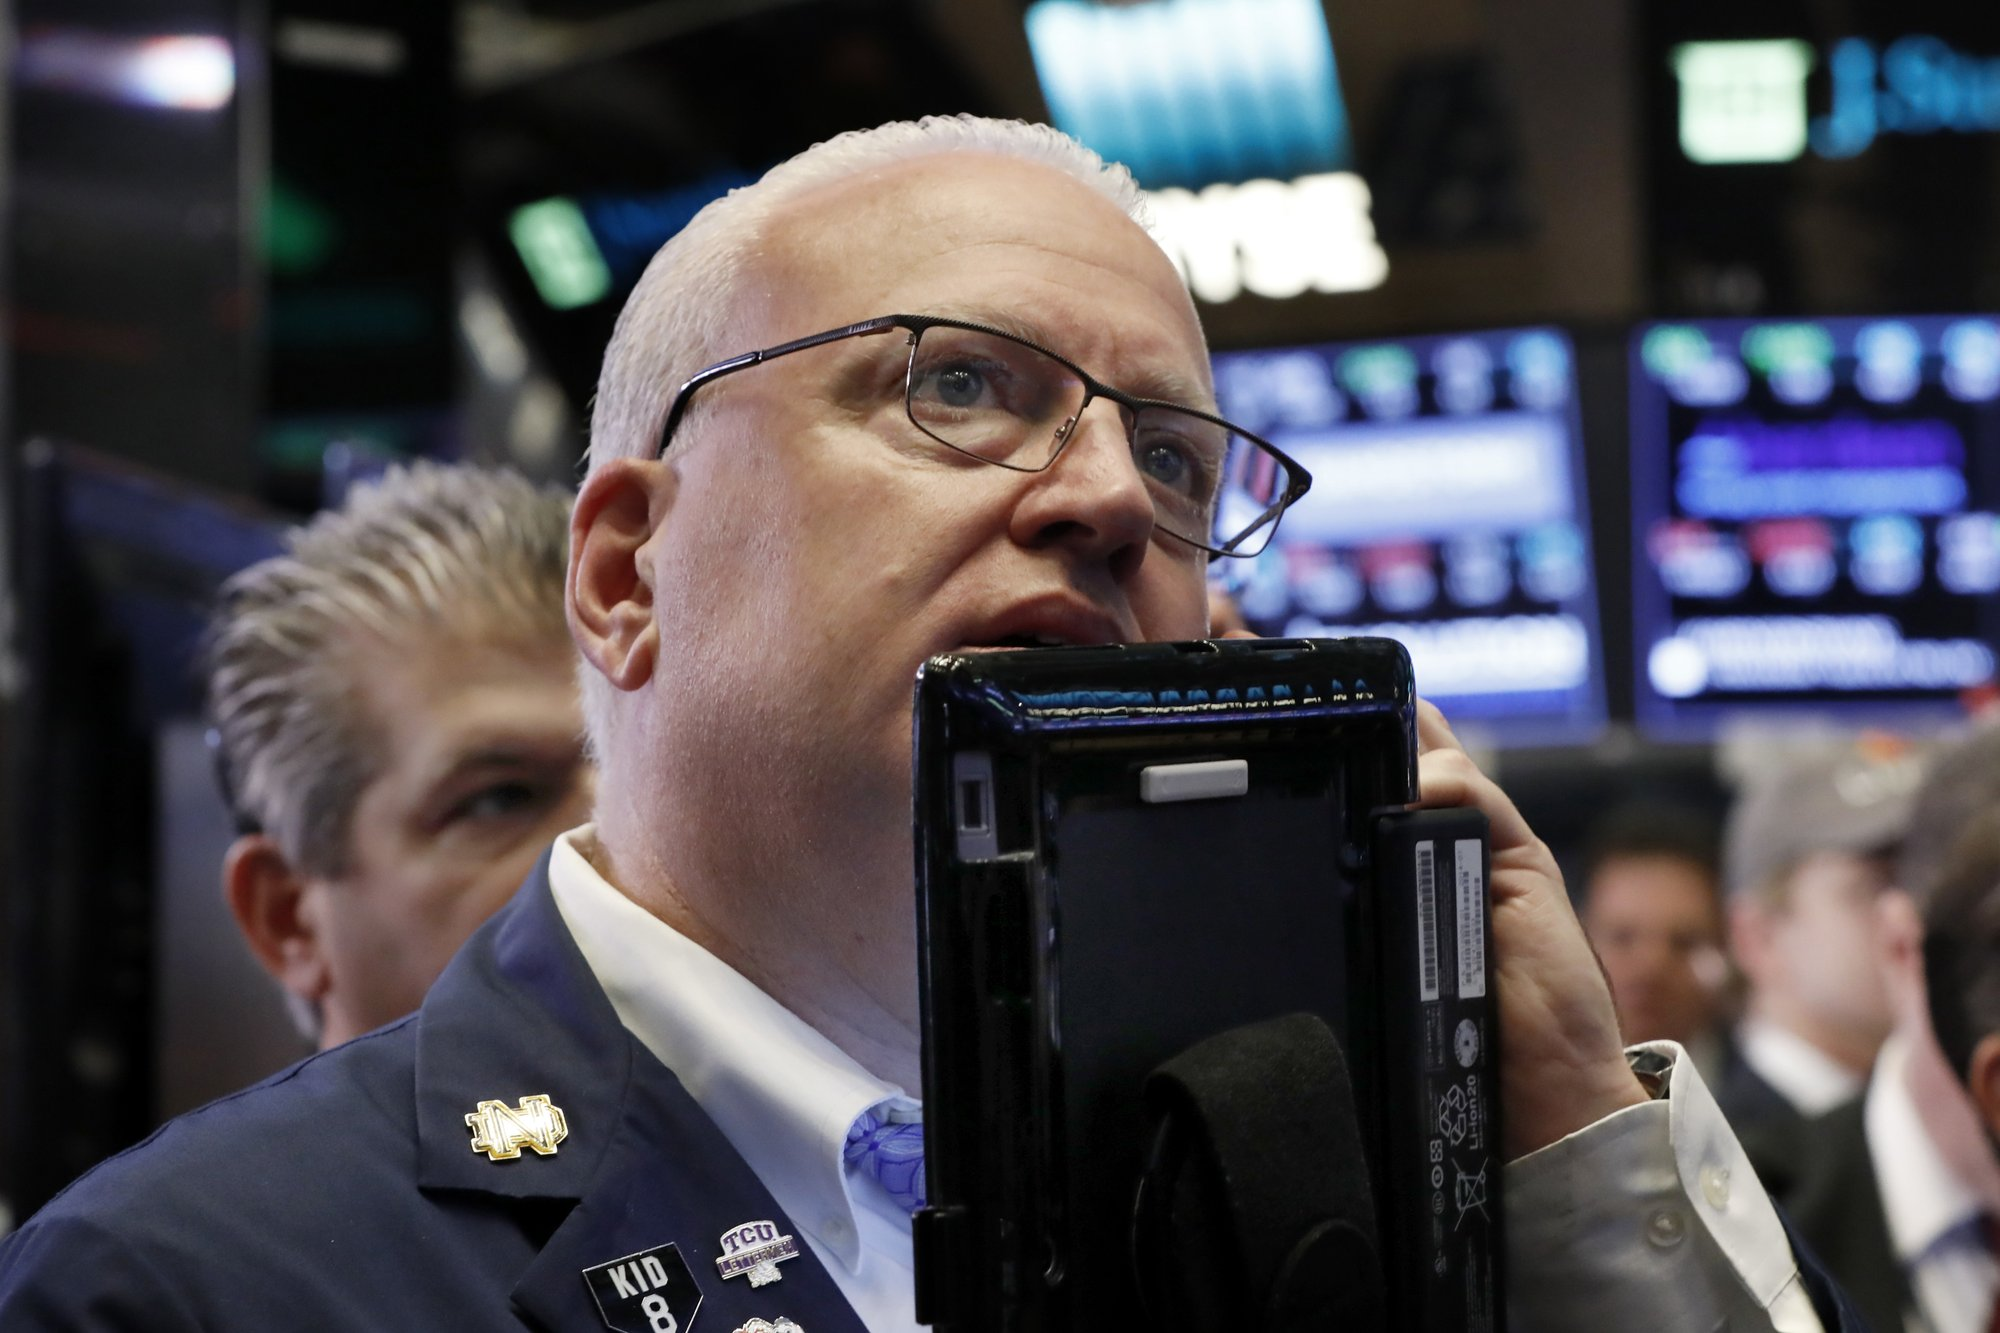 Markets Right Now: Stocks plunge in early trading